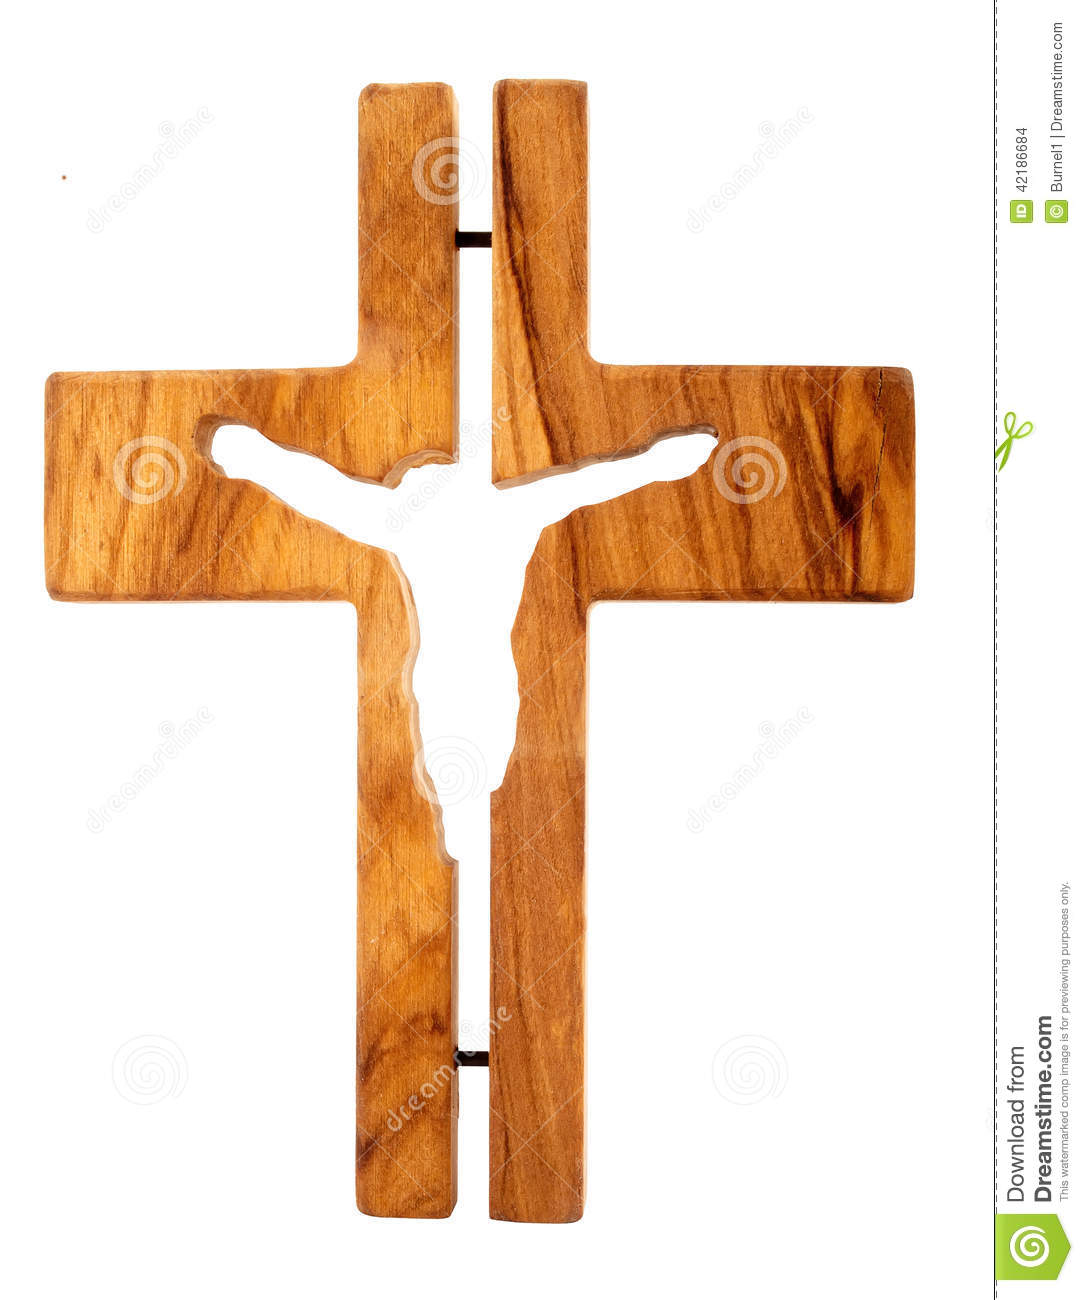 Christian Cross Images amp Stock Pictures Royalty Free